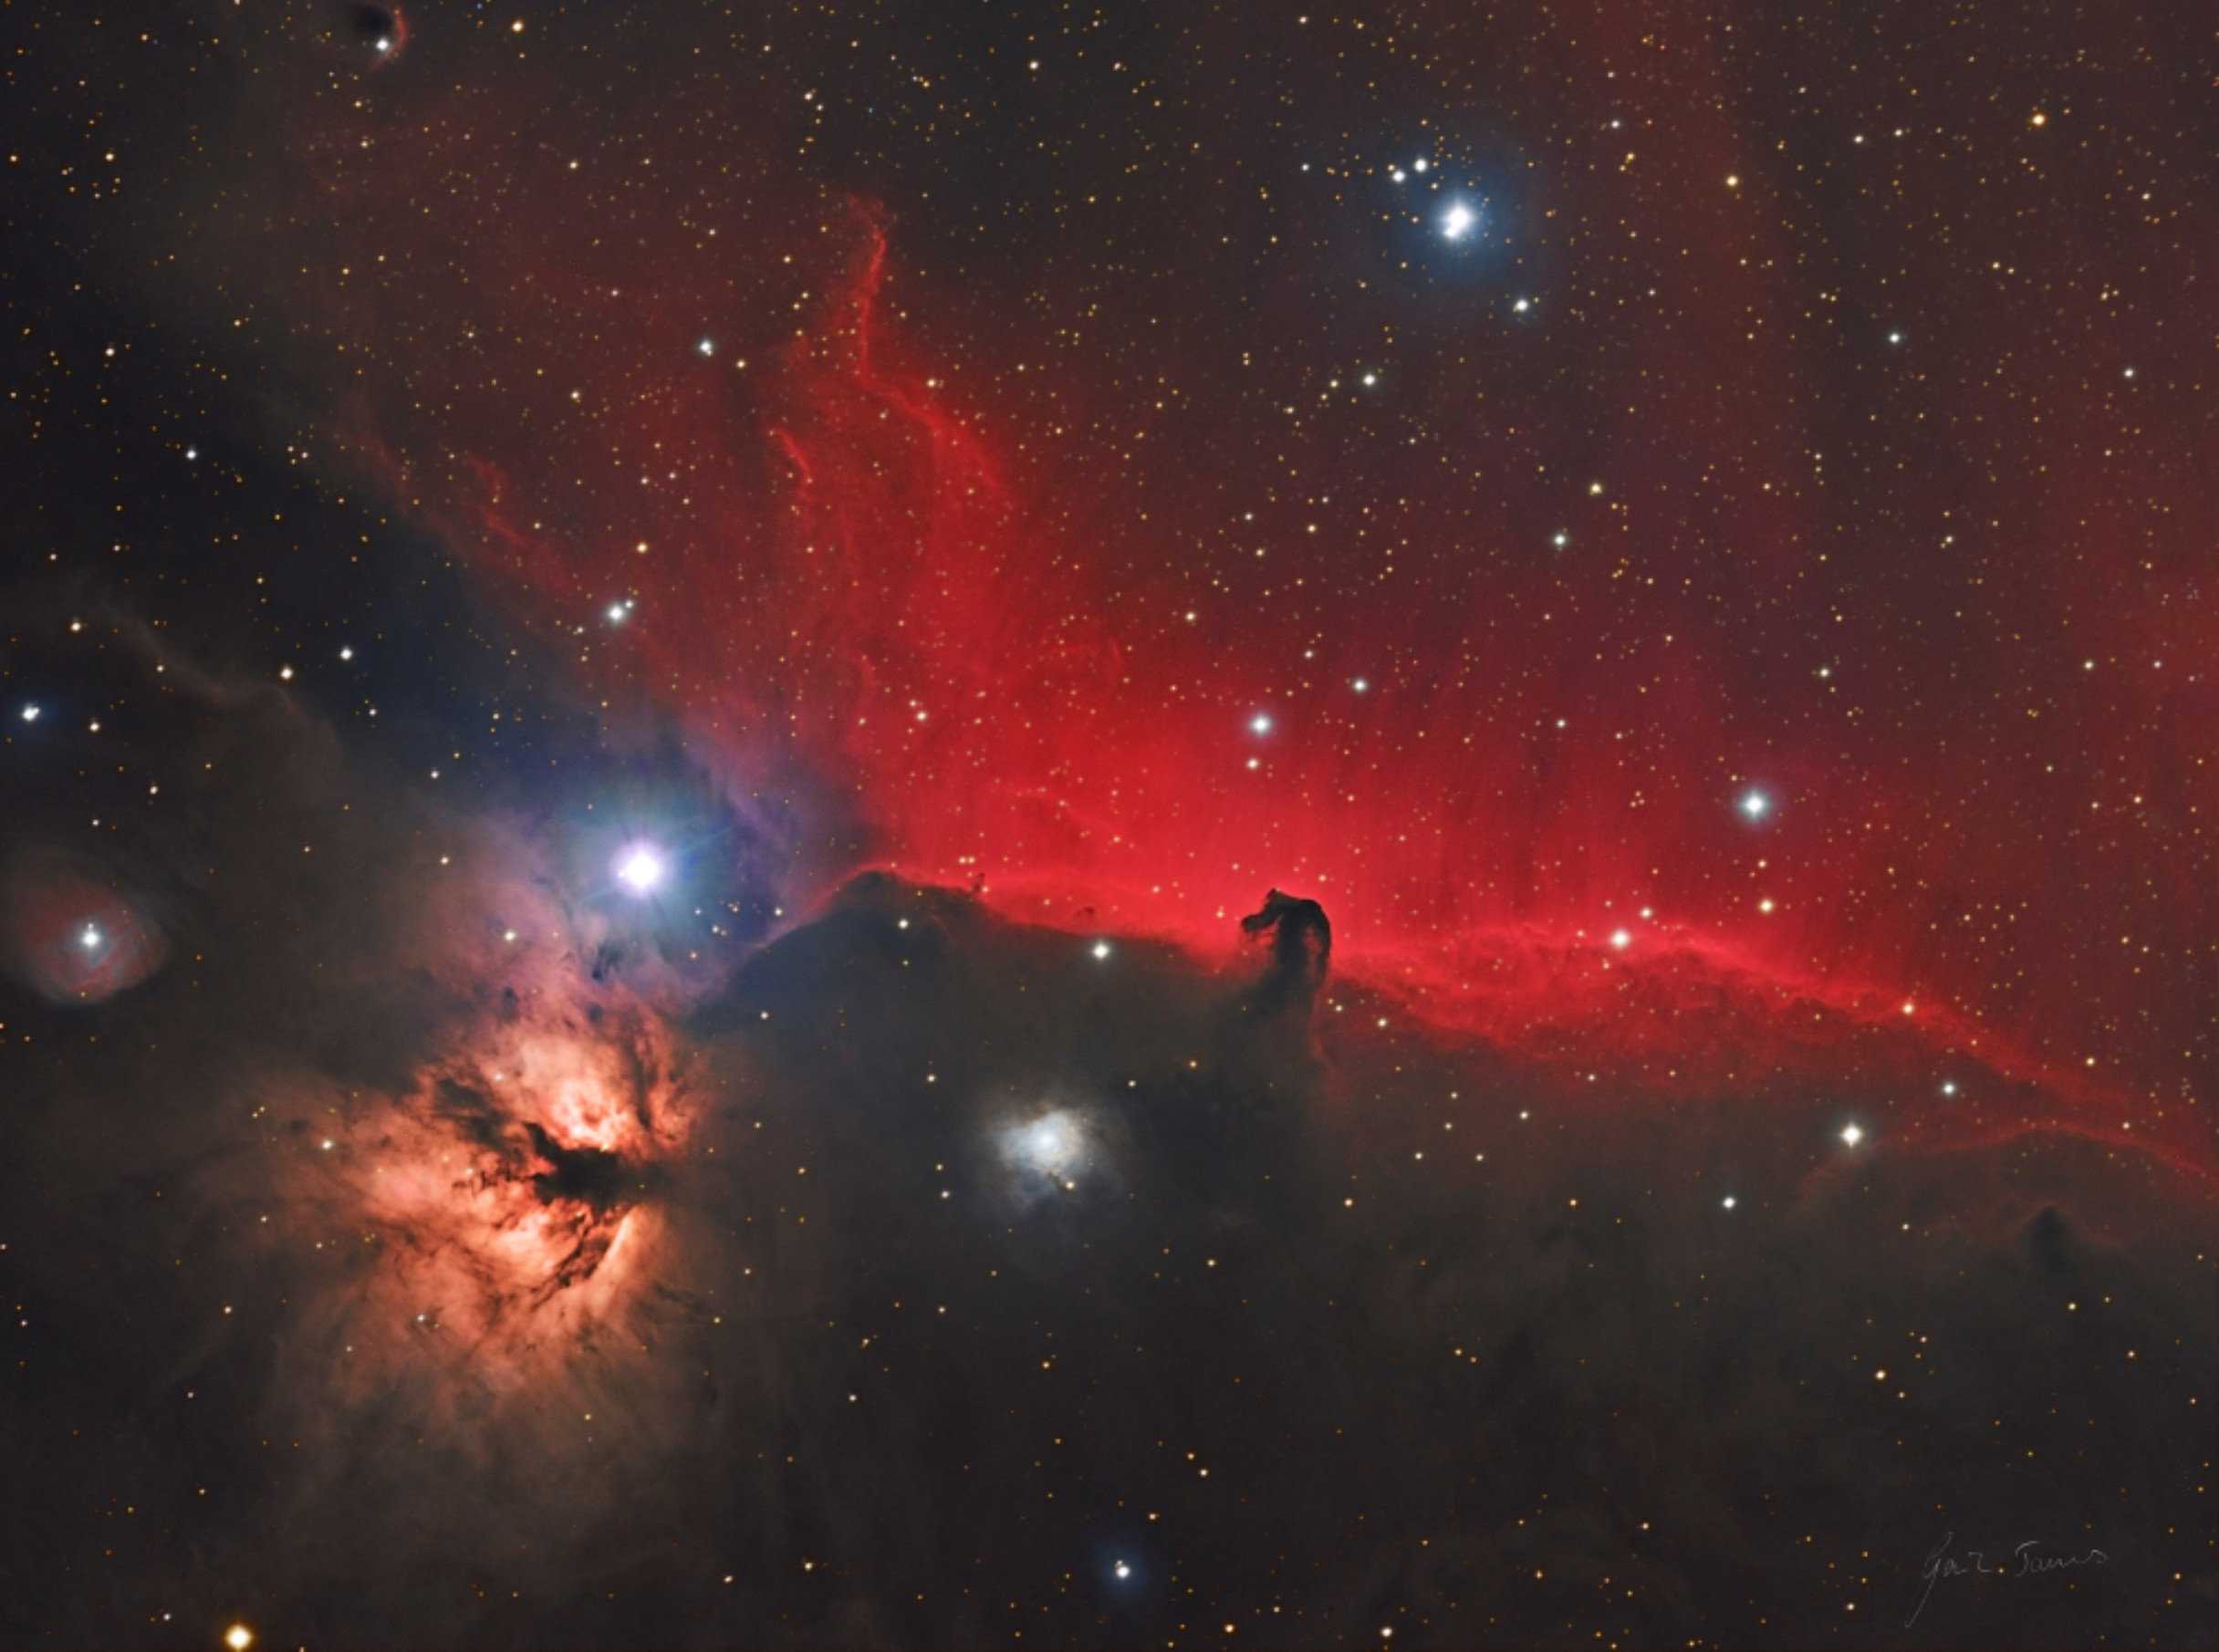 The Flame and Horseshoe Nebulae